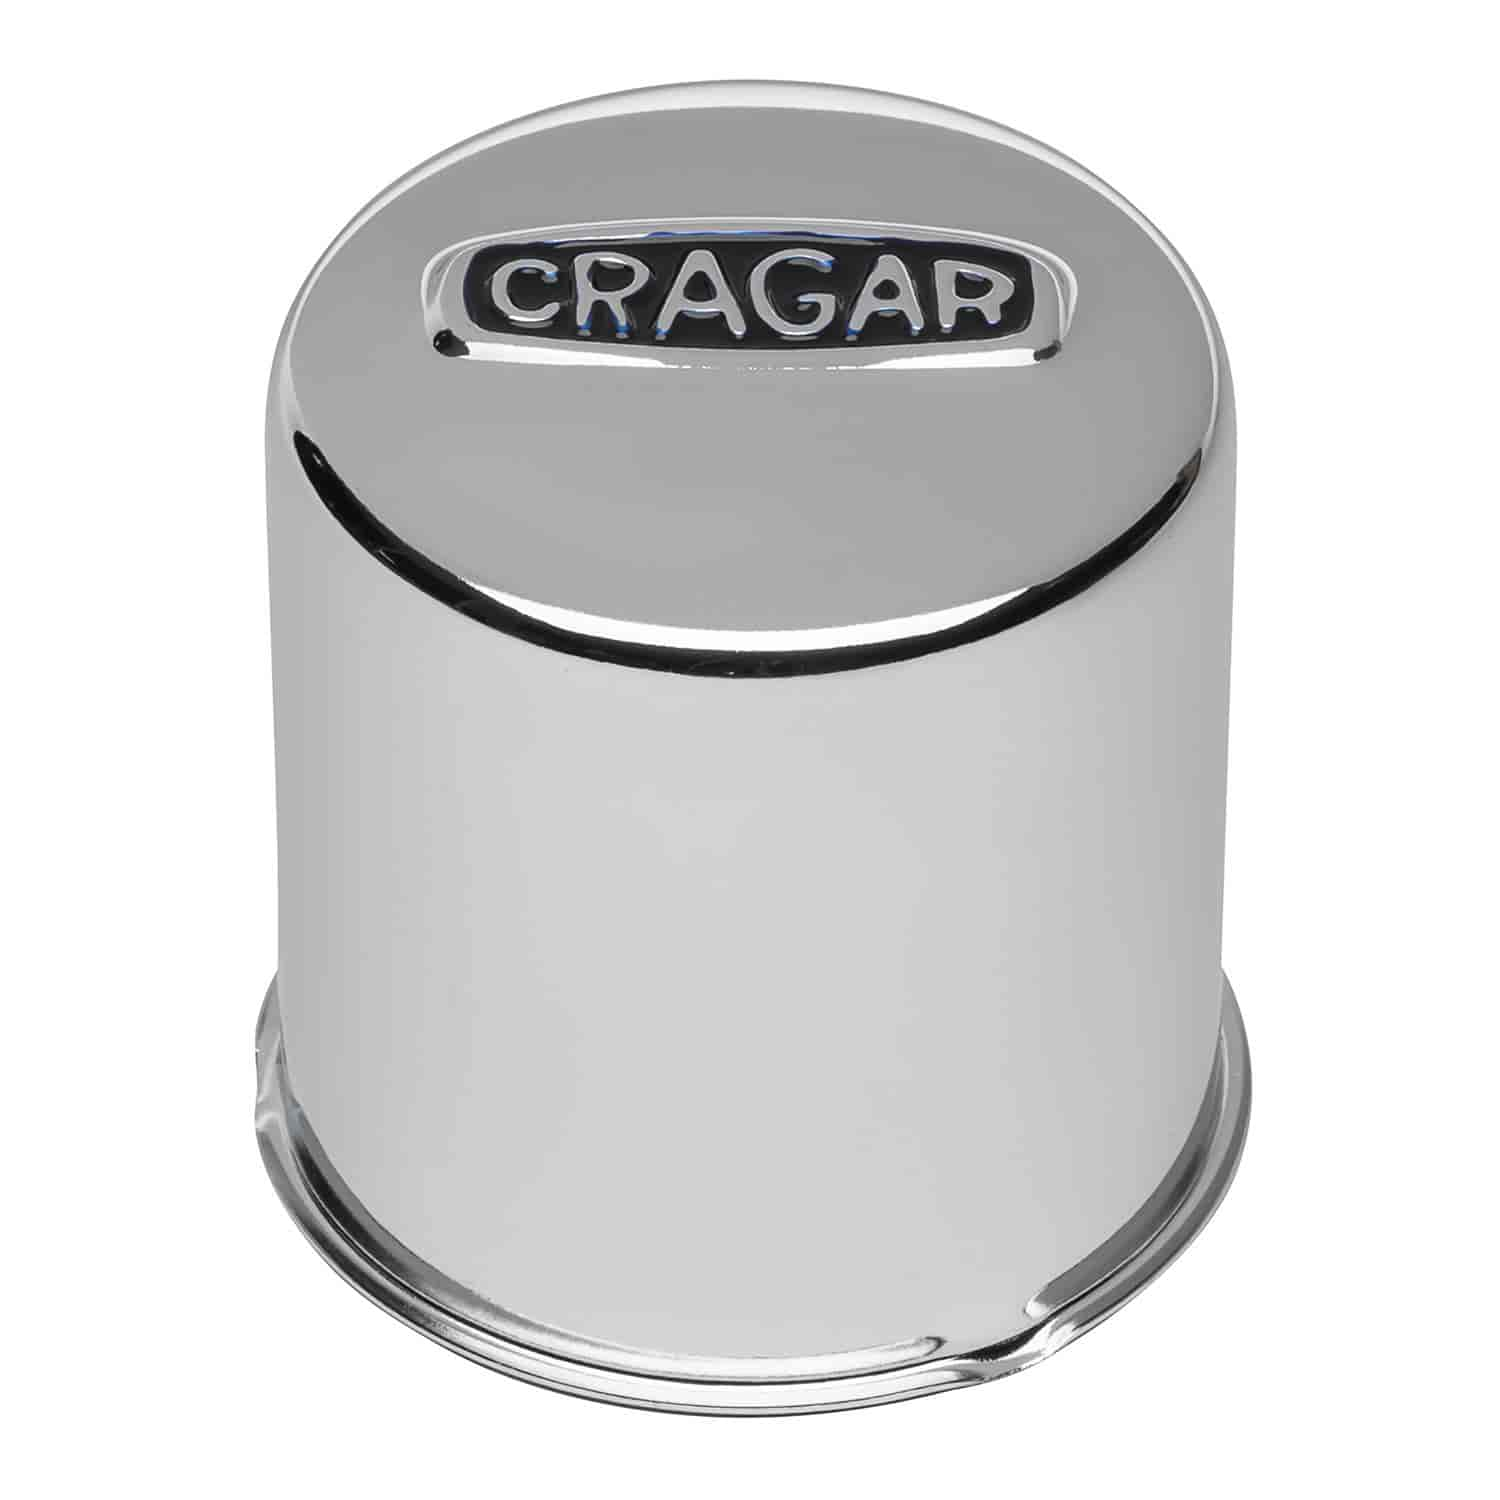 Cragar 29244-1 - Cragar Wheel Center Caps